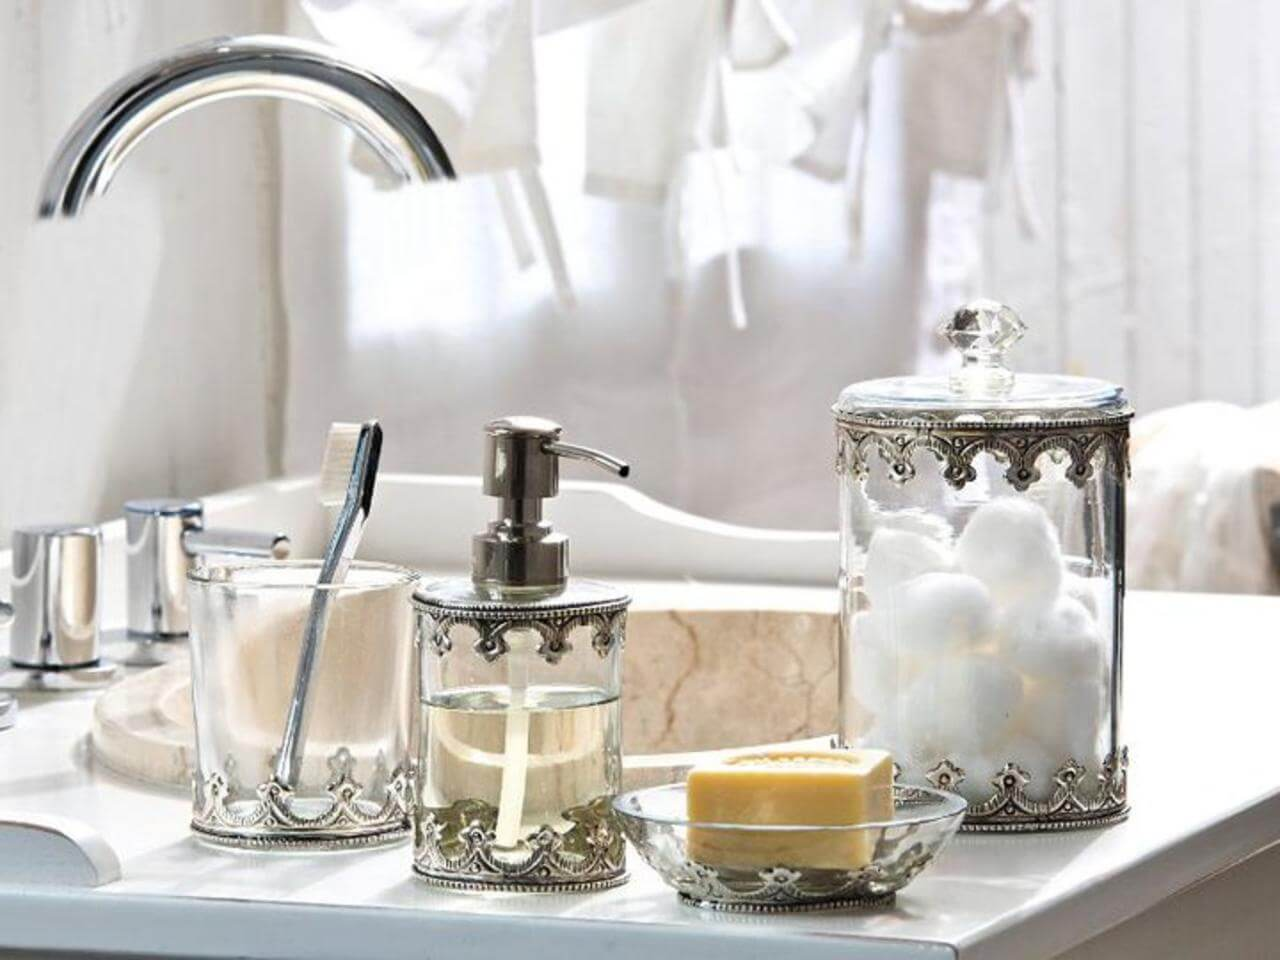 Incroyable Vintage Inspired Metal And Glass Bathroom Accessories